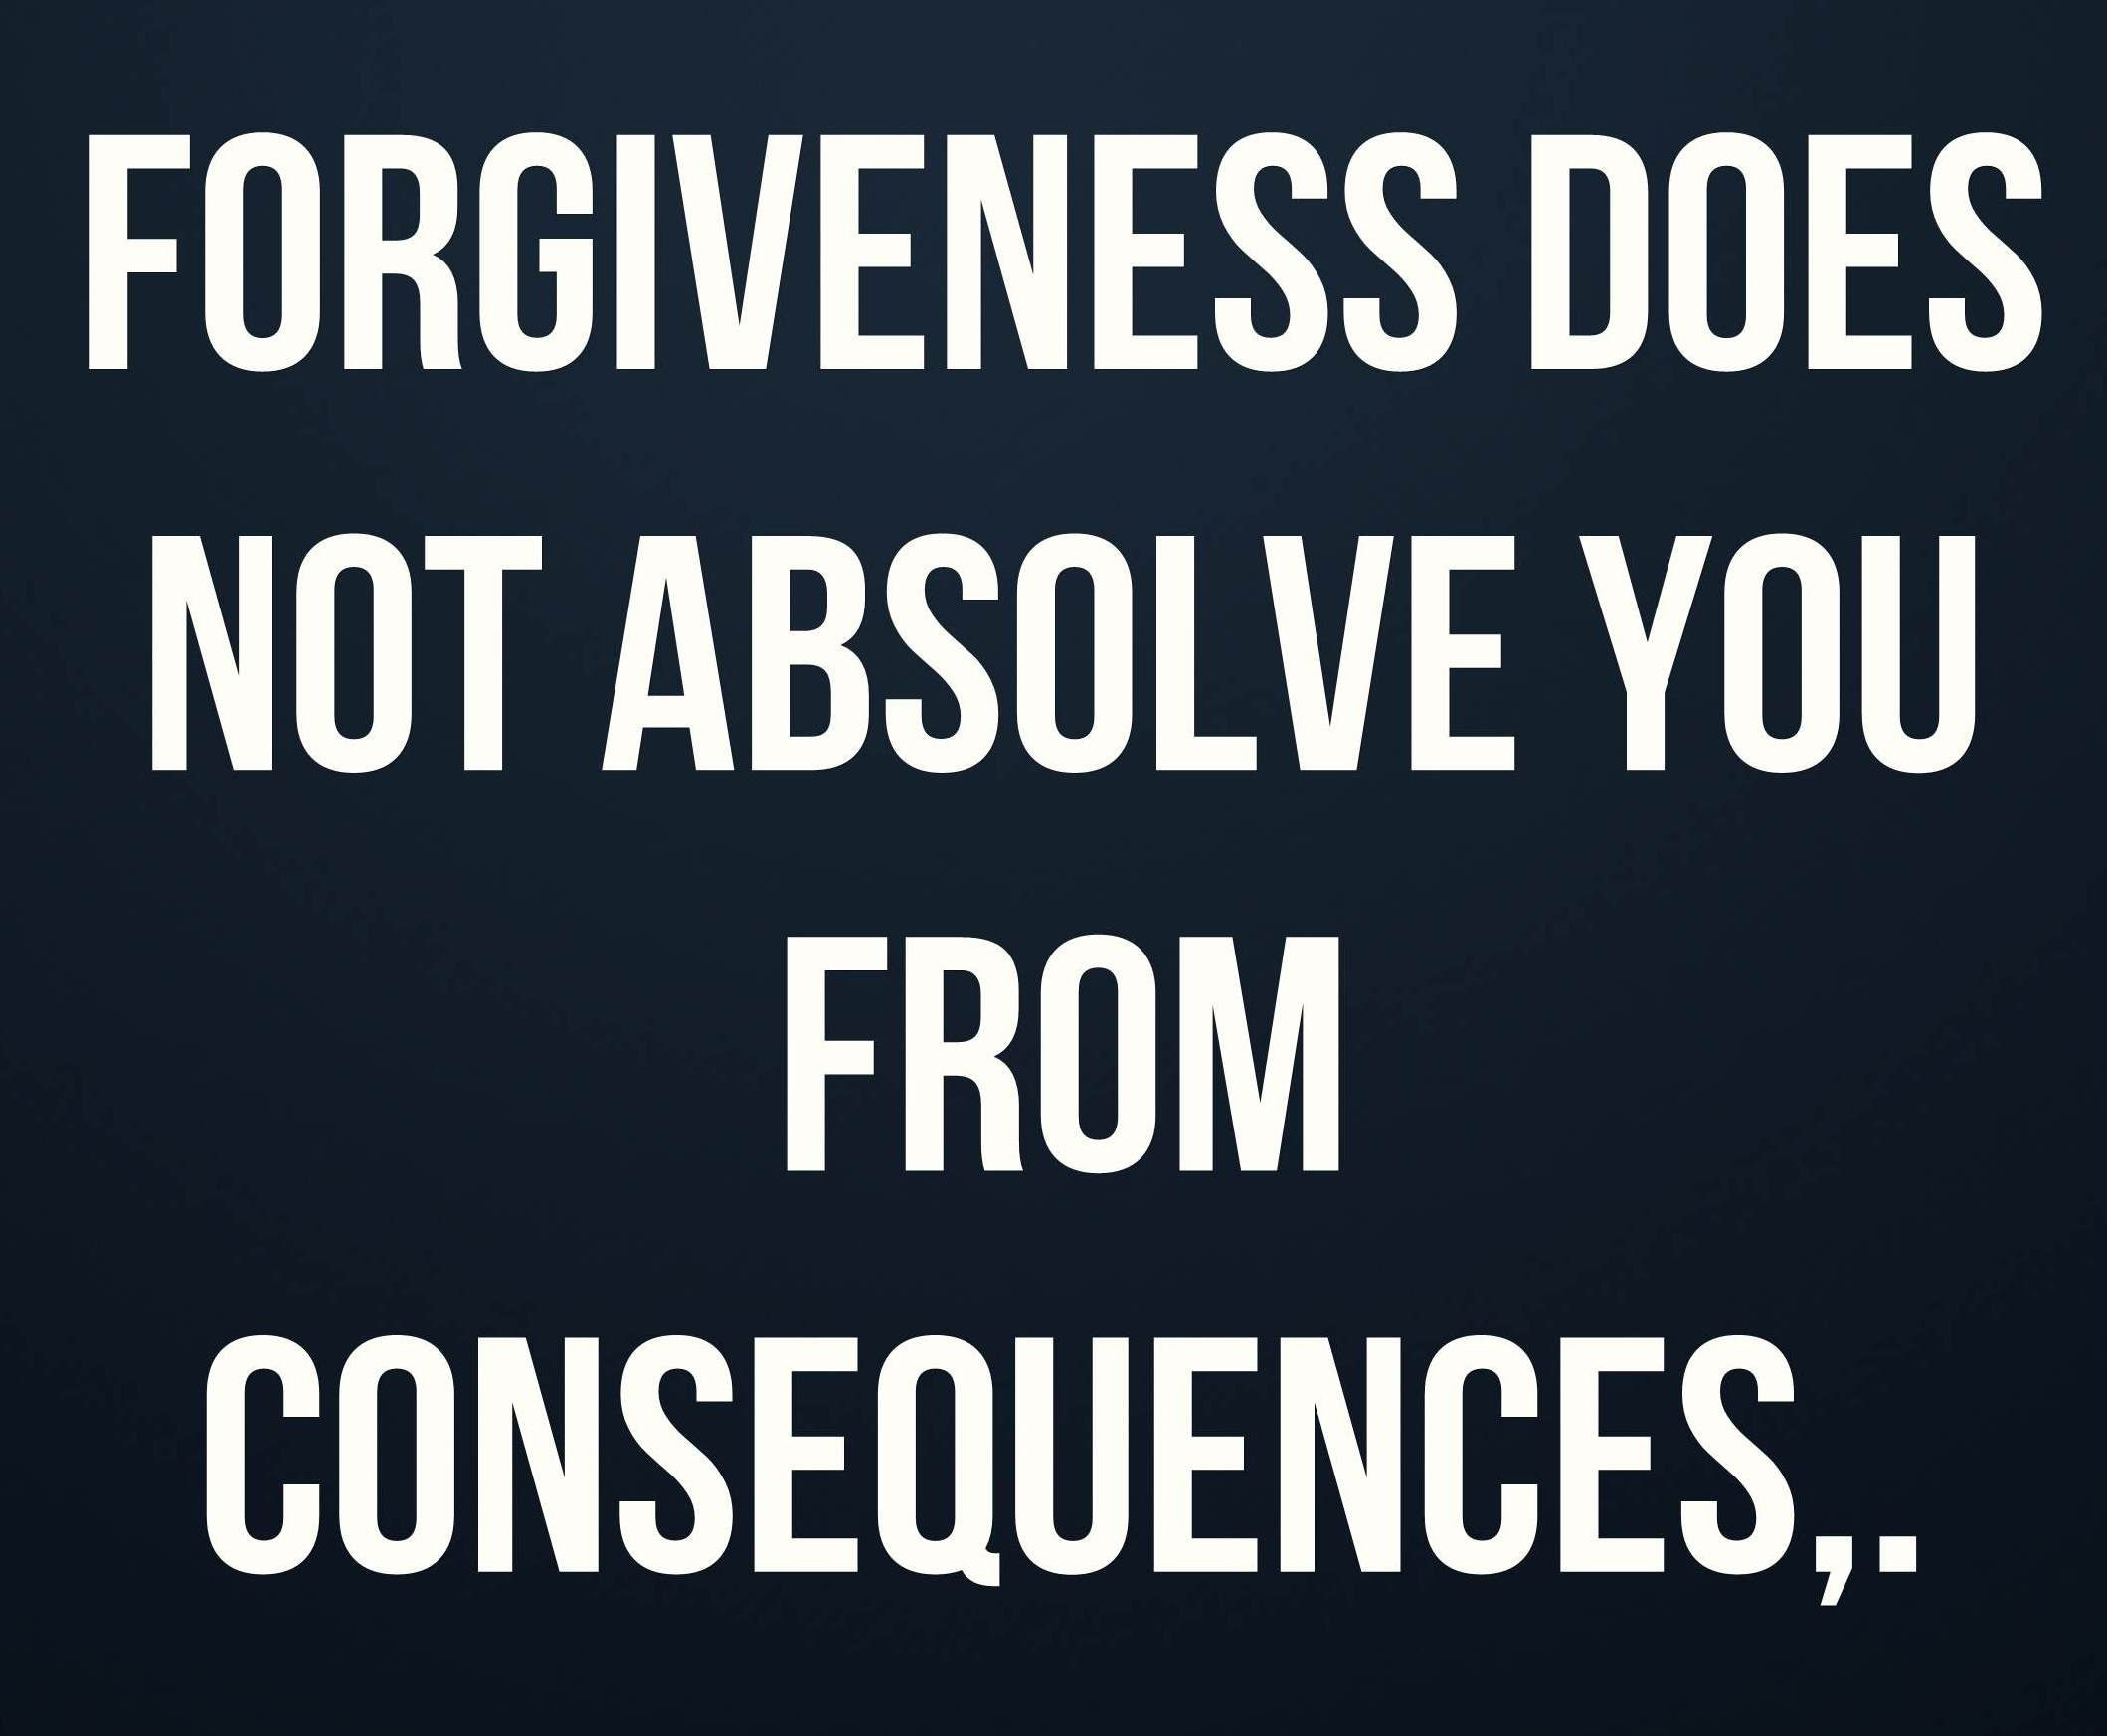 forgiveness-does-not-absolve-you-from-consequences